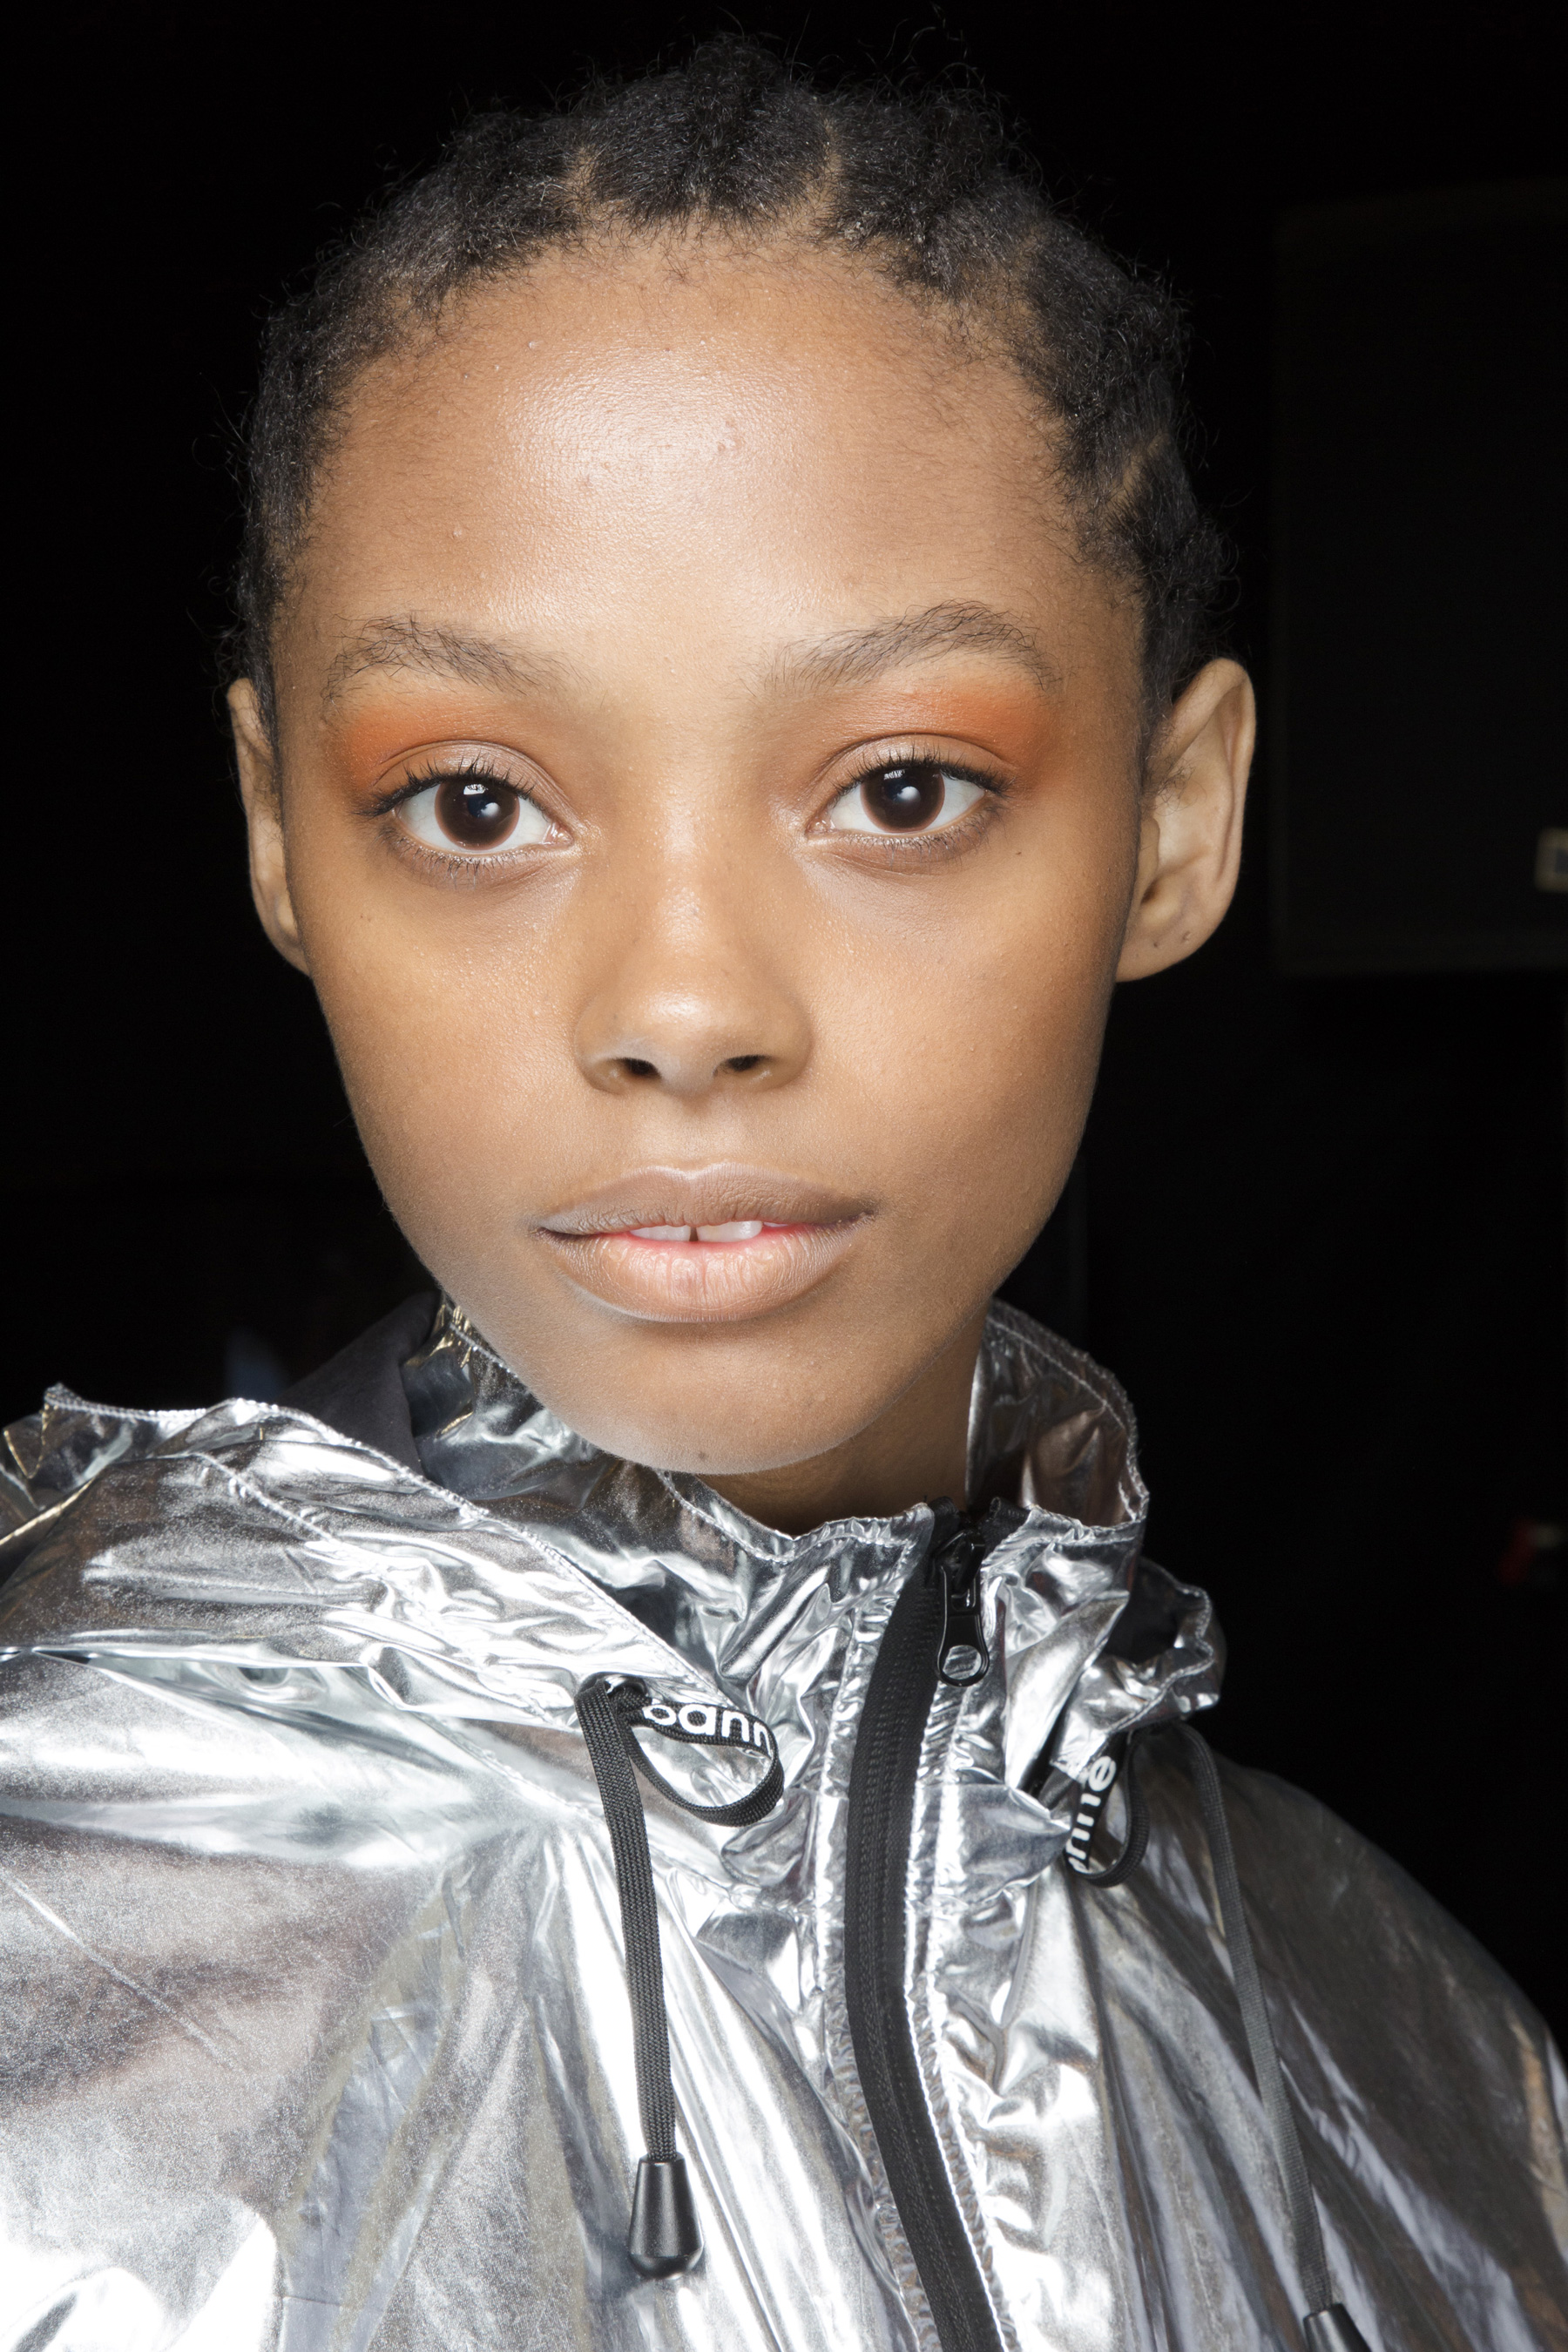 Altuzarra Spring 2019 Fashion Show Backstage Beauty